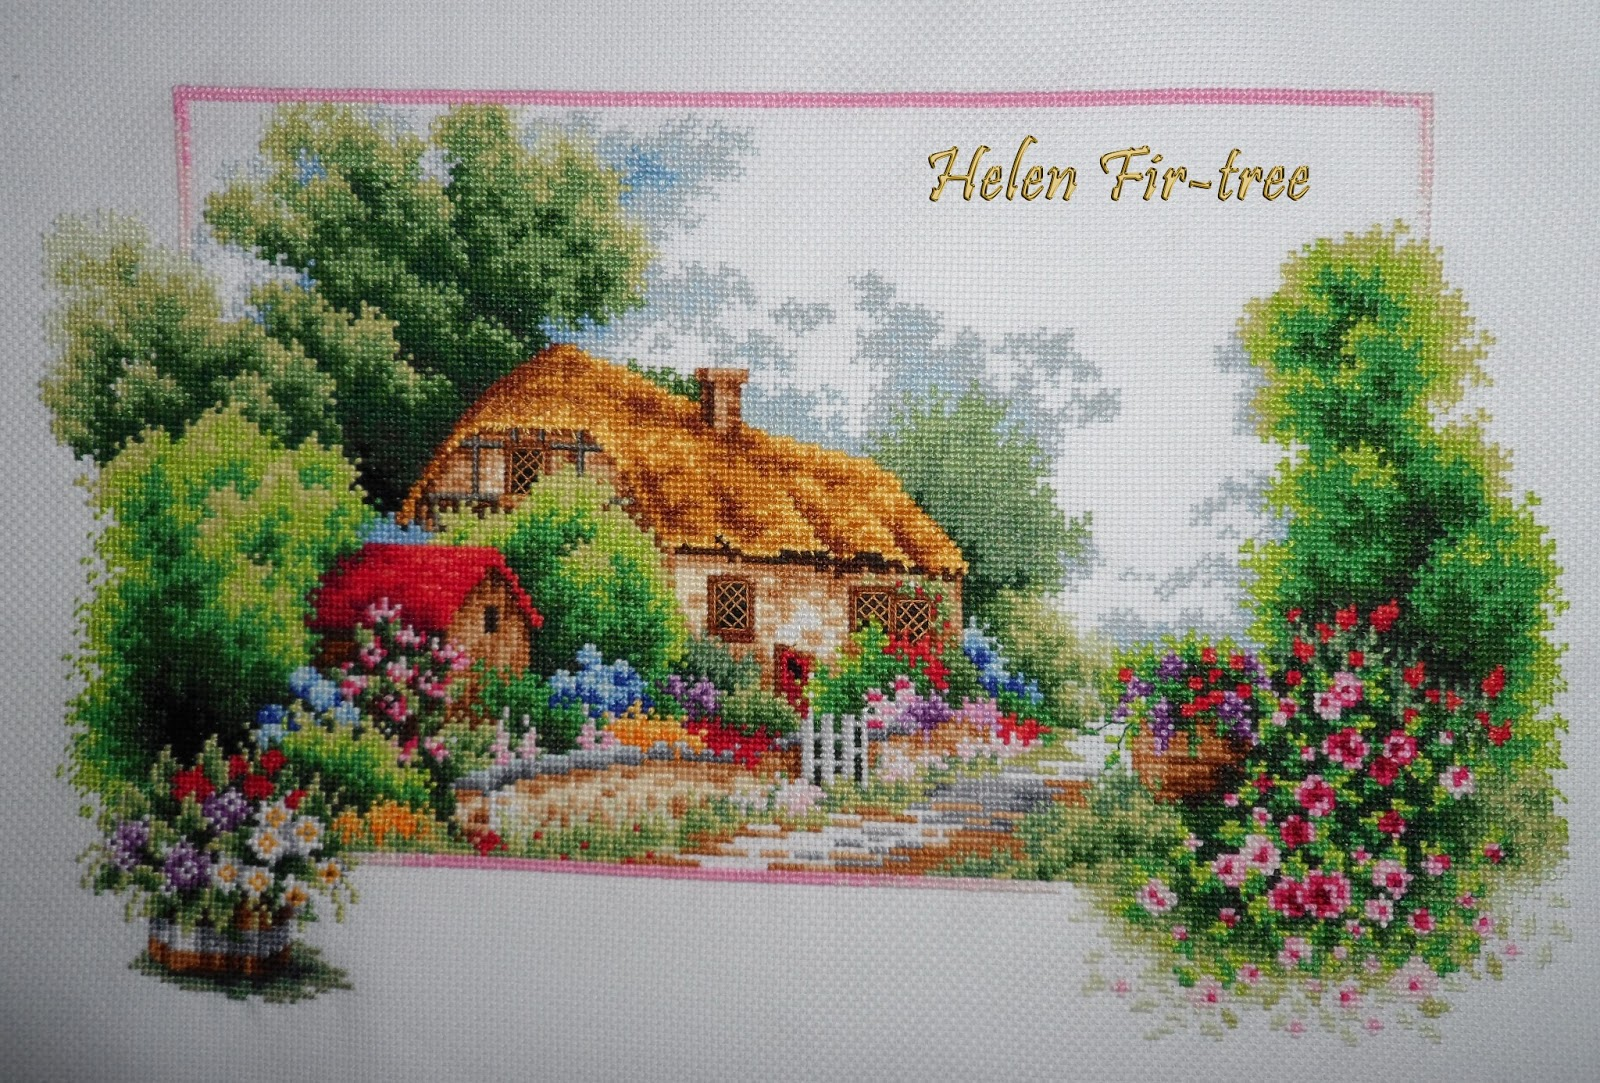 Helen Fir-tree вышивка времена года Весна counted cross stitch seasons spring